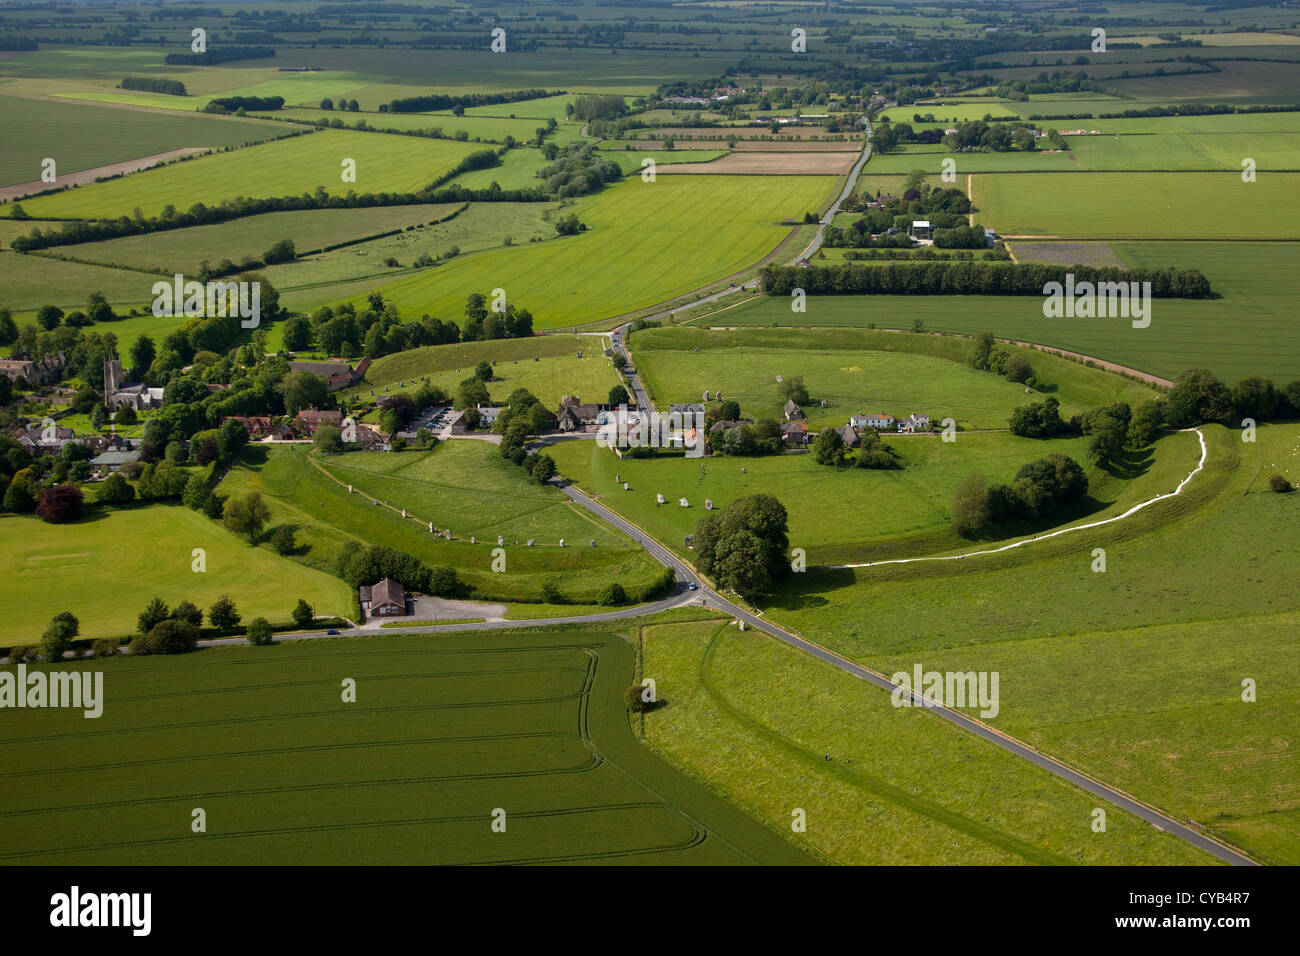 Aerial view of Avebury village and neolithic henge stone circle, Wiltshire, England - Stock Image